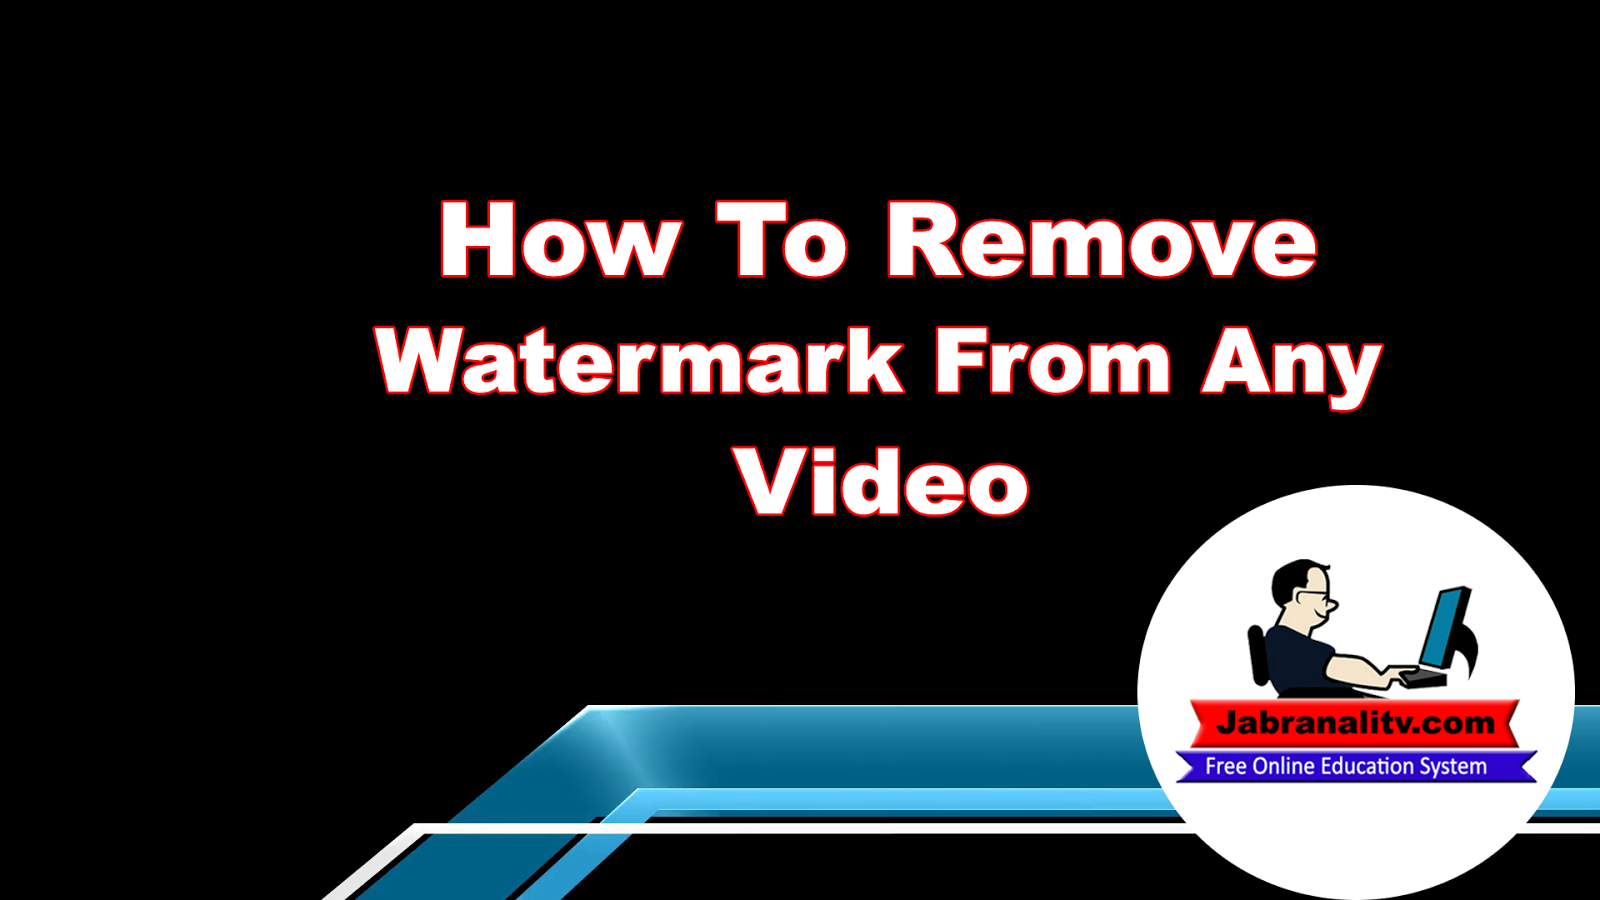 How To Remove Watermark From Any Video